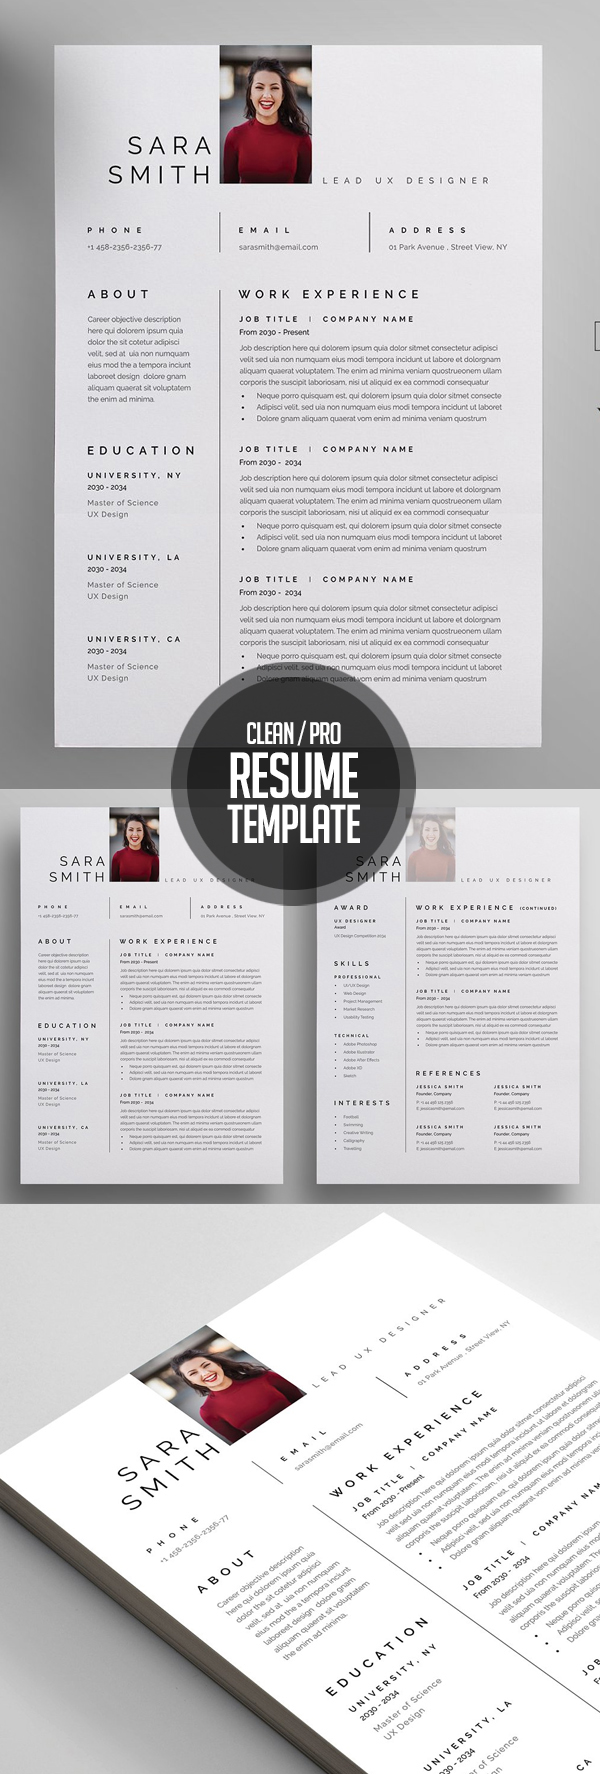 Clean and Professional Resume Design & Cover Letter